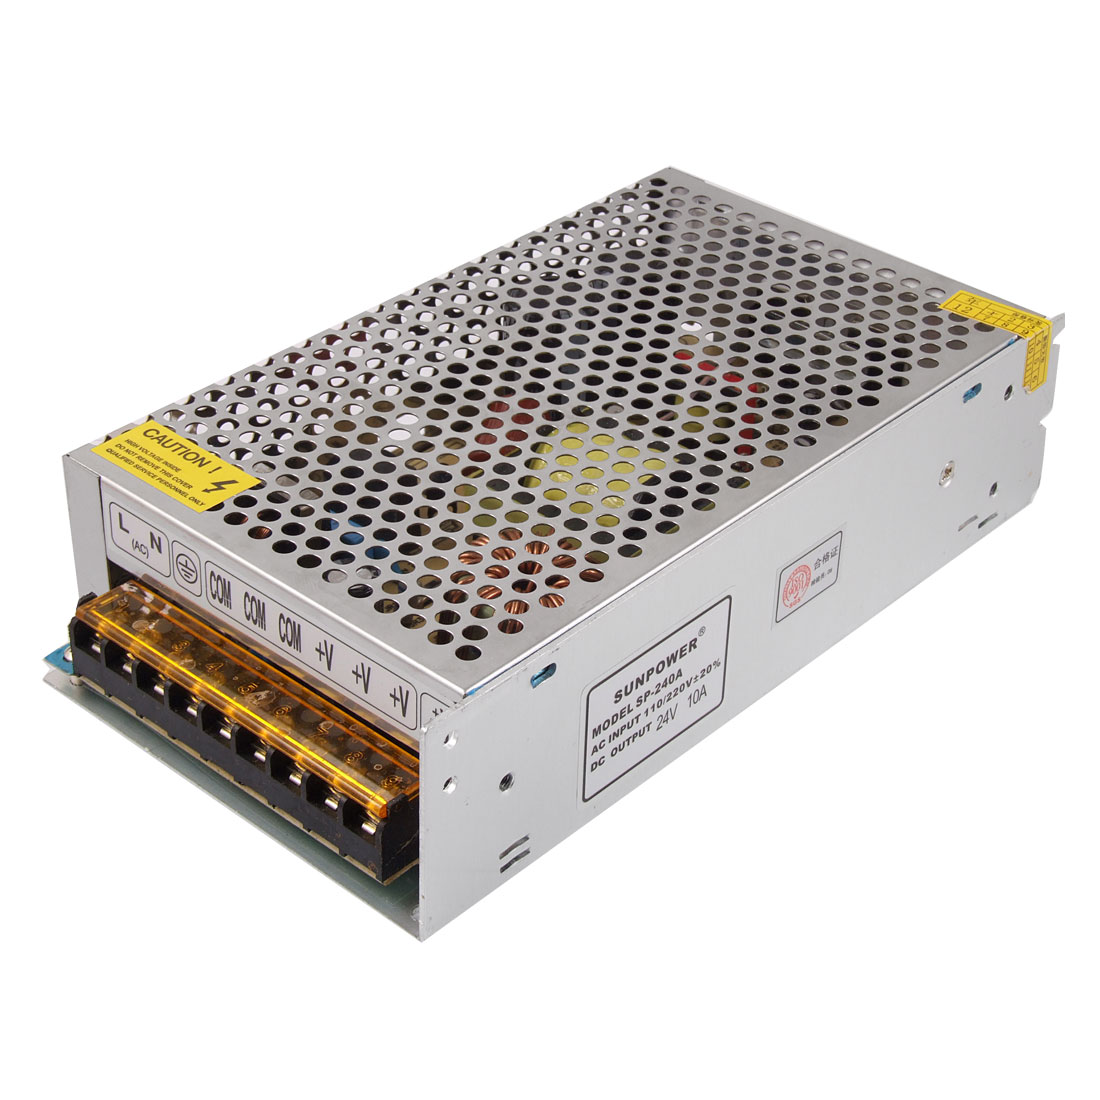 AC 100/220V DC 24V 10A 240W Regulated Switch Power Supply for LED Strip Flexable Light